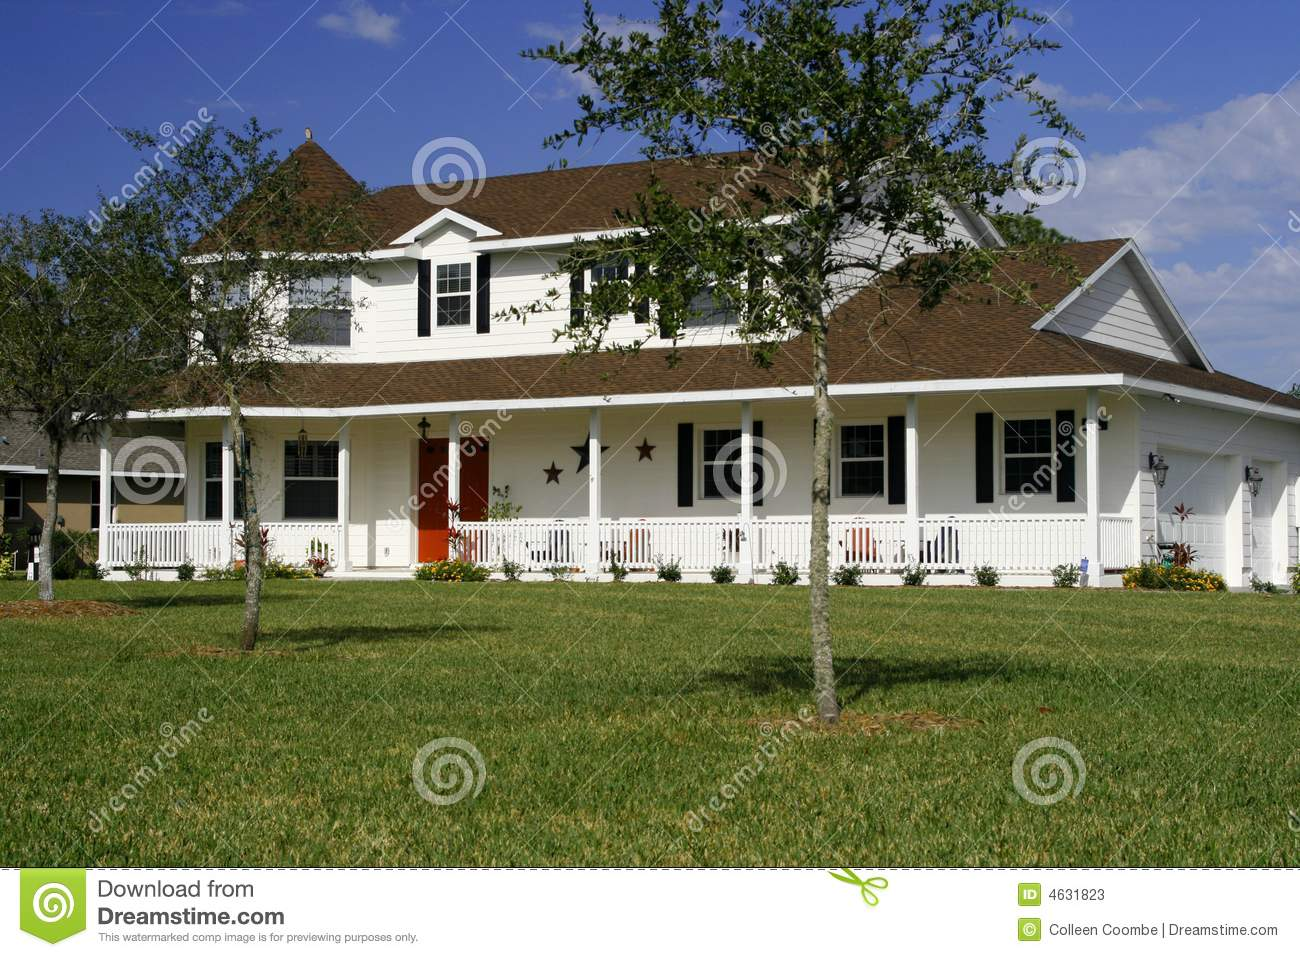 New american style home stock image image of front for New american style house plans